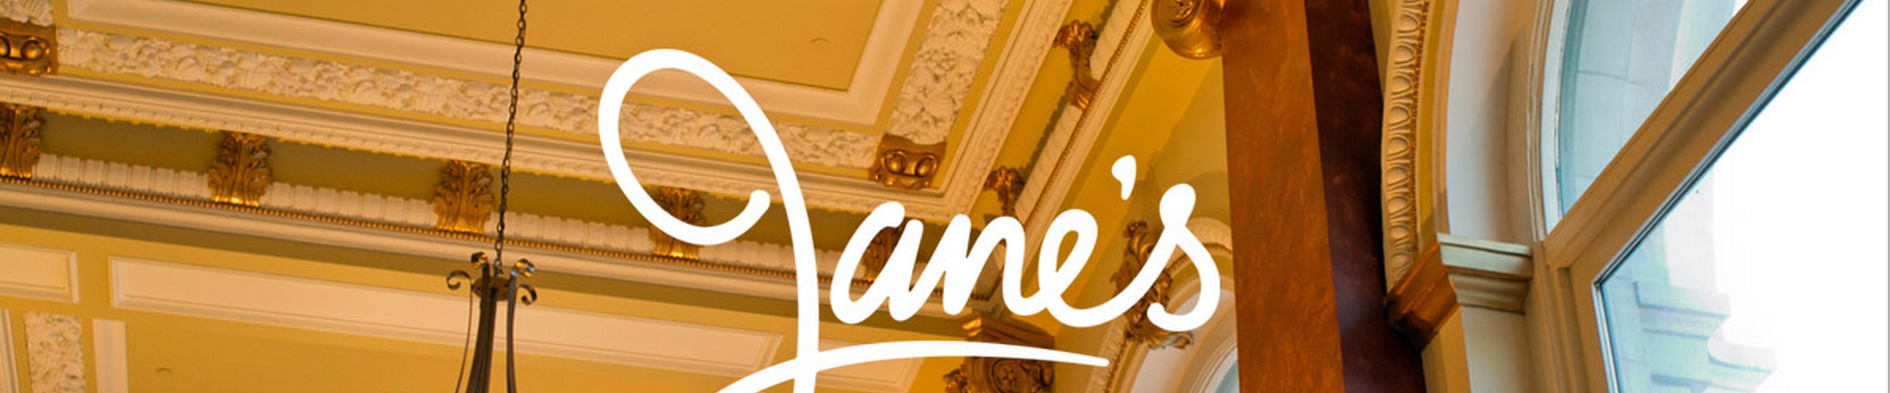 Banner photo of Jane's Restaurant